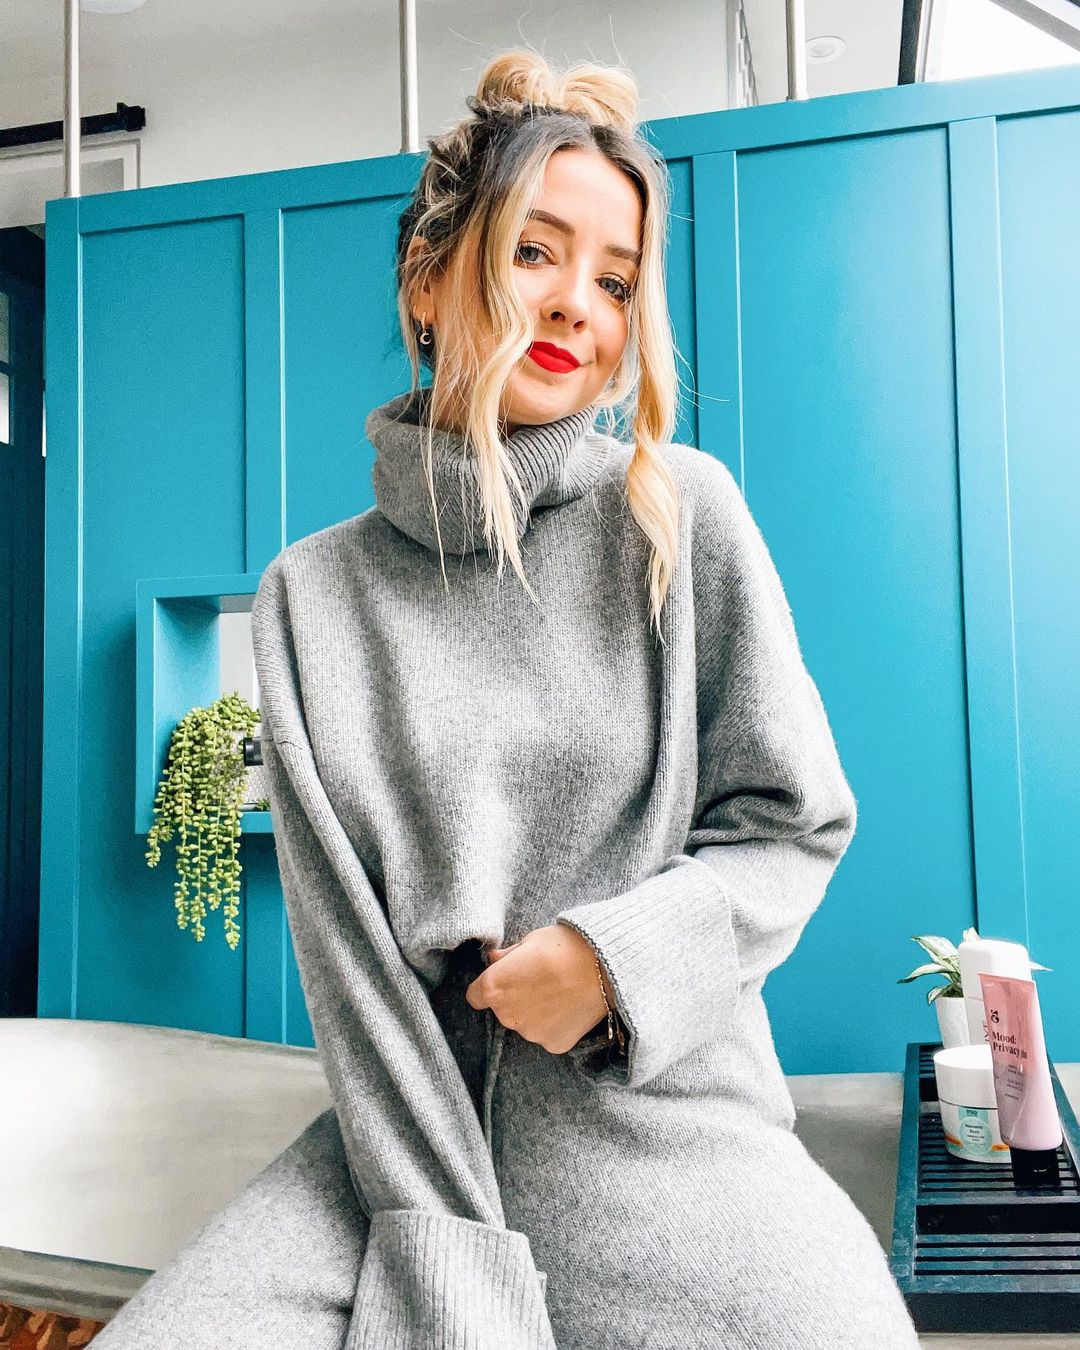 The likes of Zoe Sugg, aka Zoella, have raked in millions as influencers